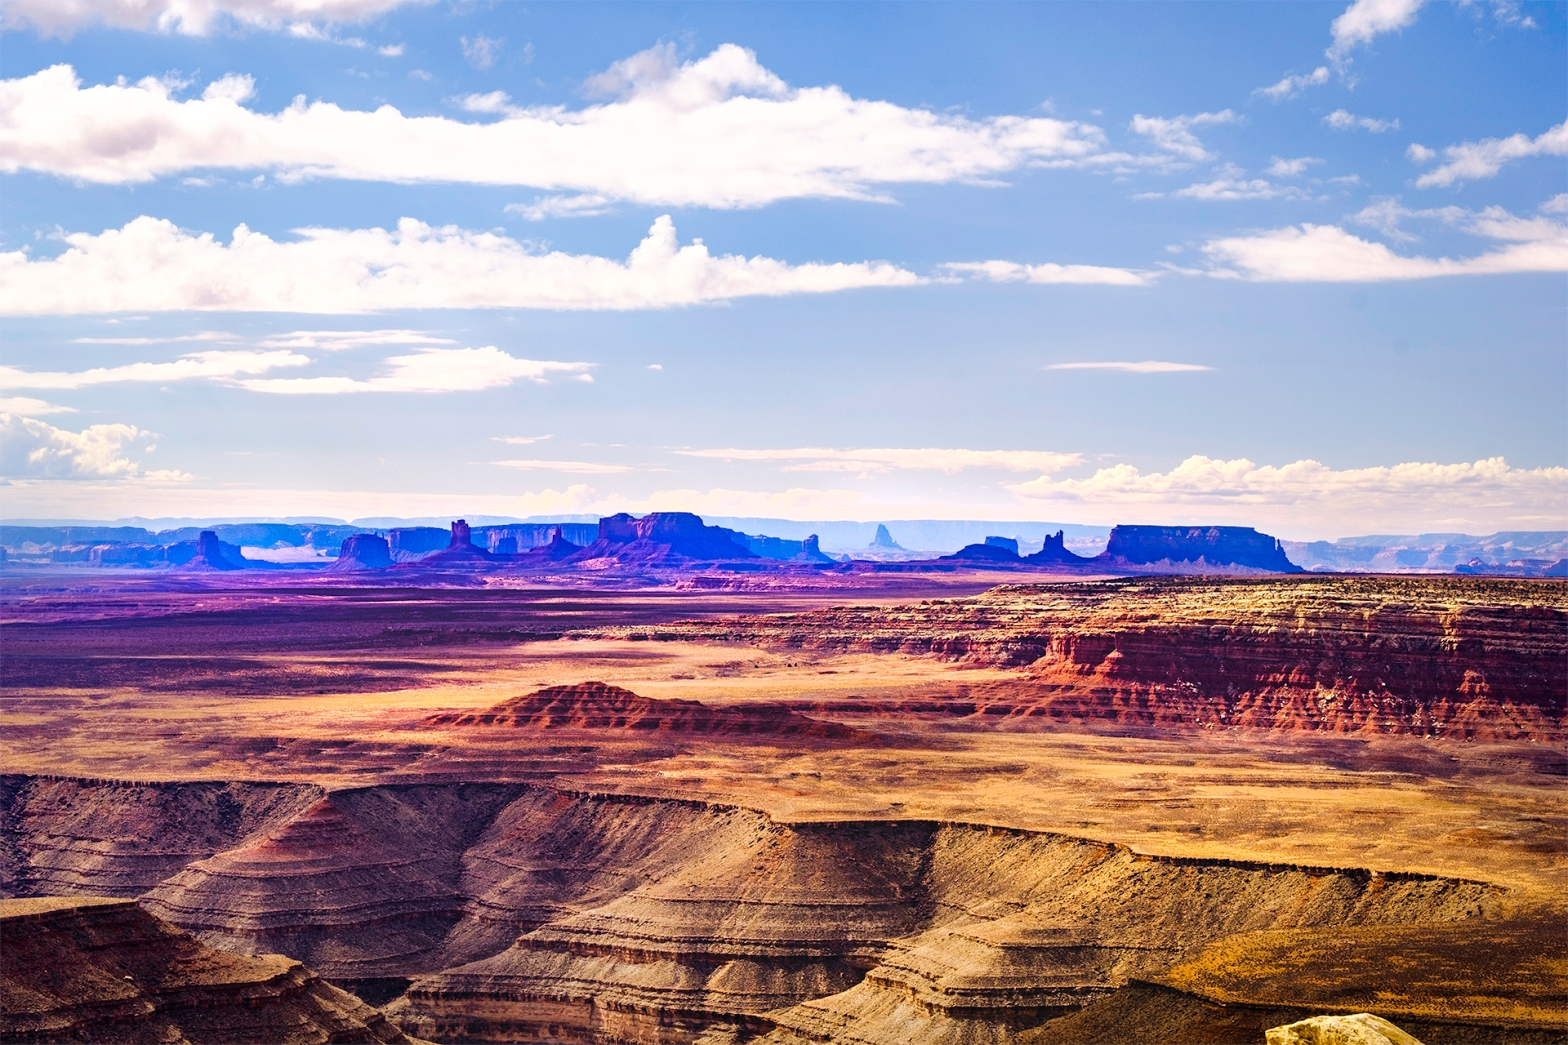 Muley Point overlooking the San Juan River Goosenecks with Monument Valley in the background.